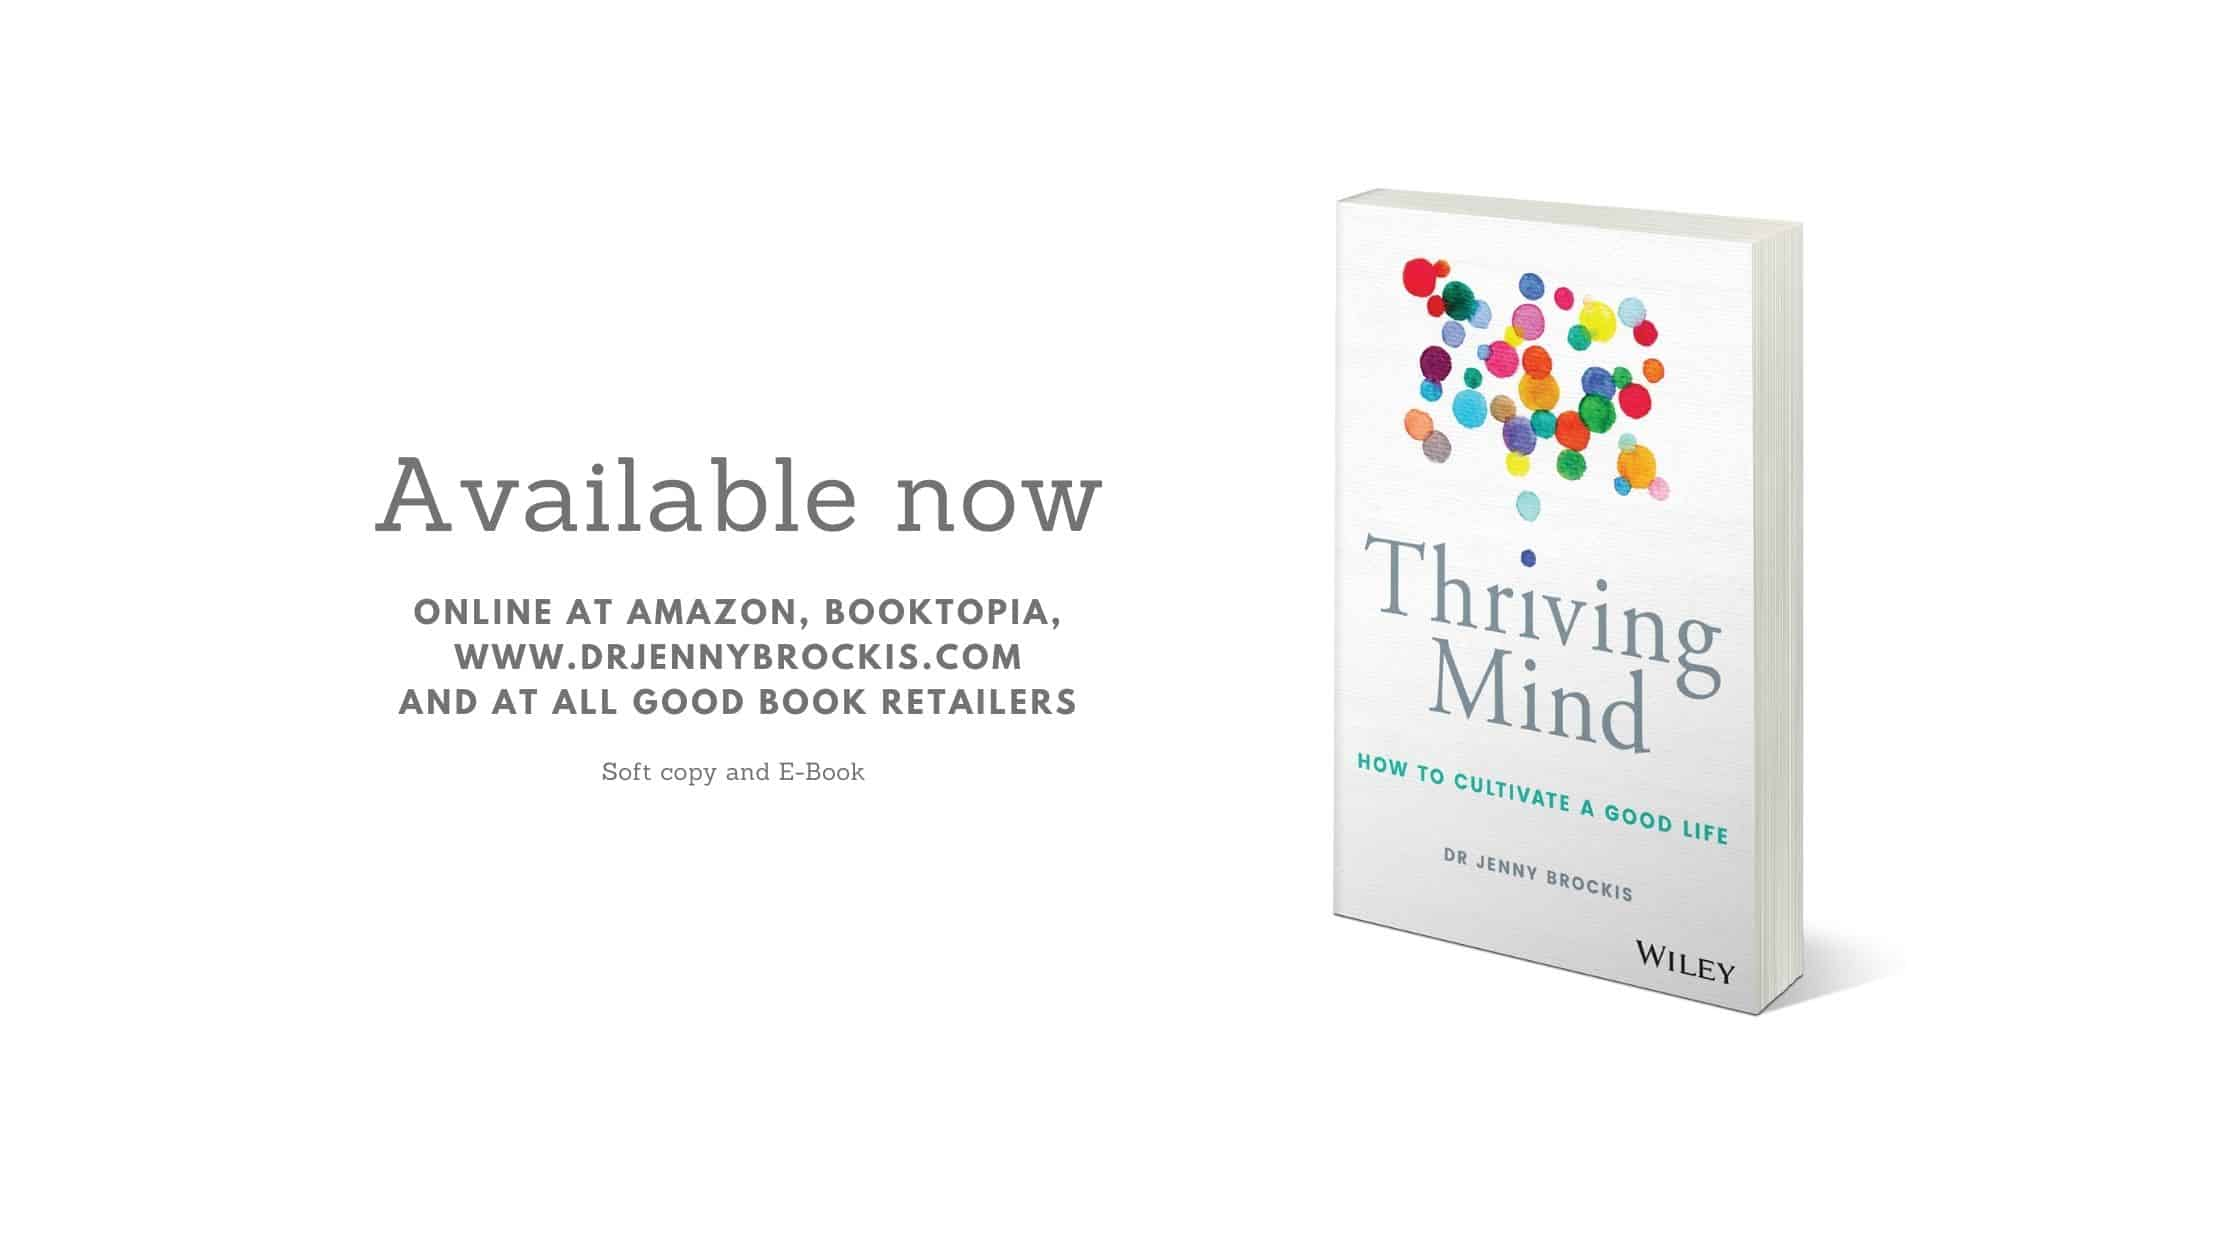 WIN a Copy of 'Thriving Mind' by Dr Jenny Brockis